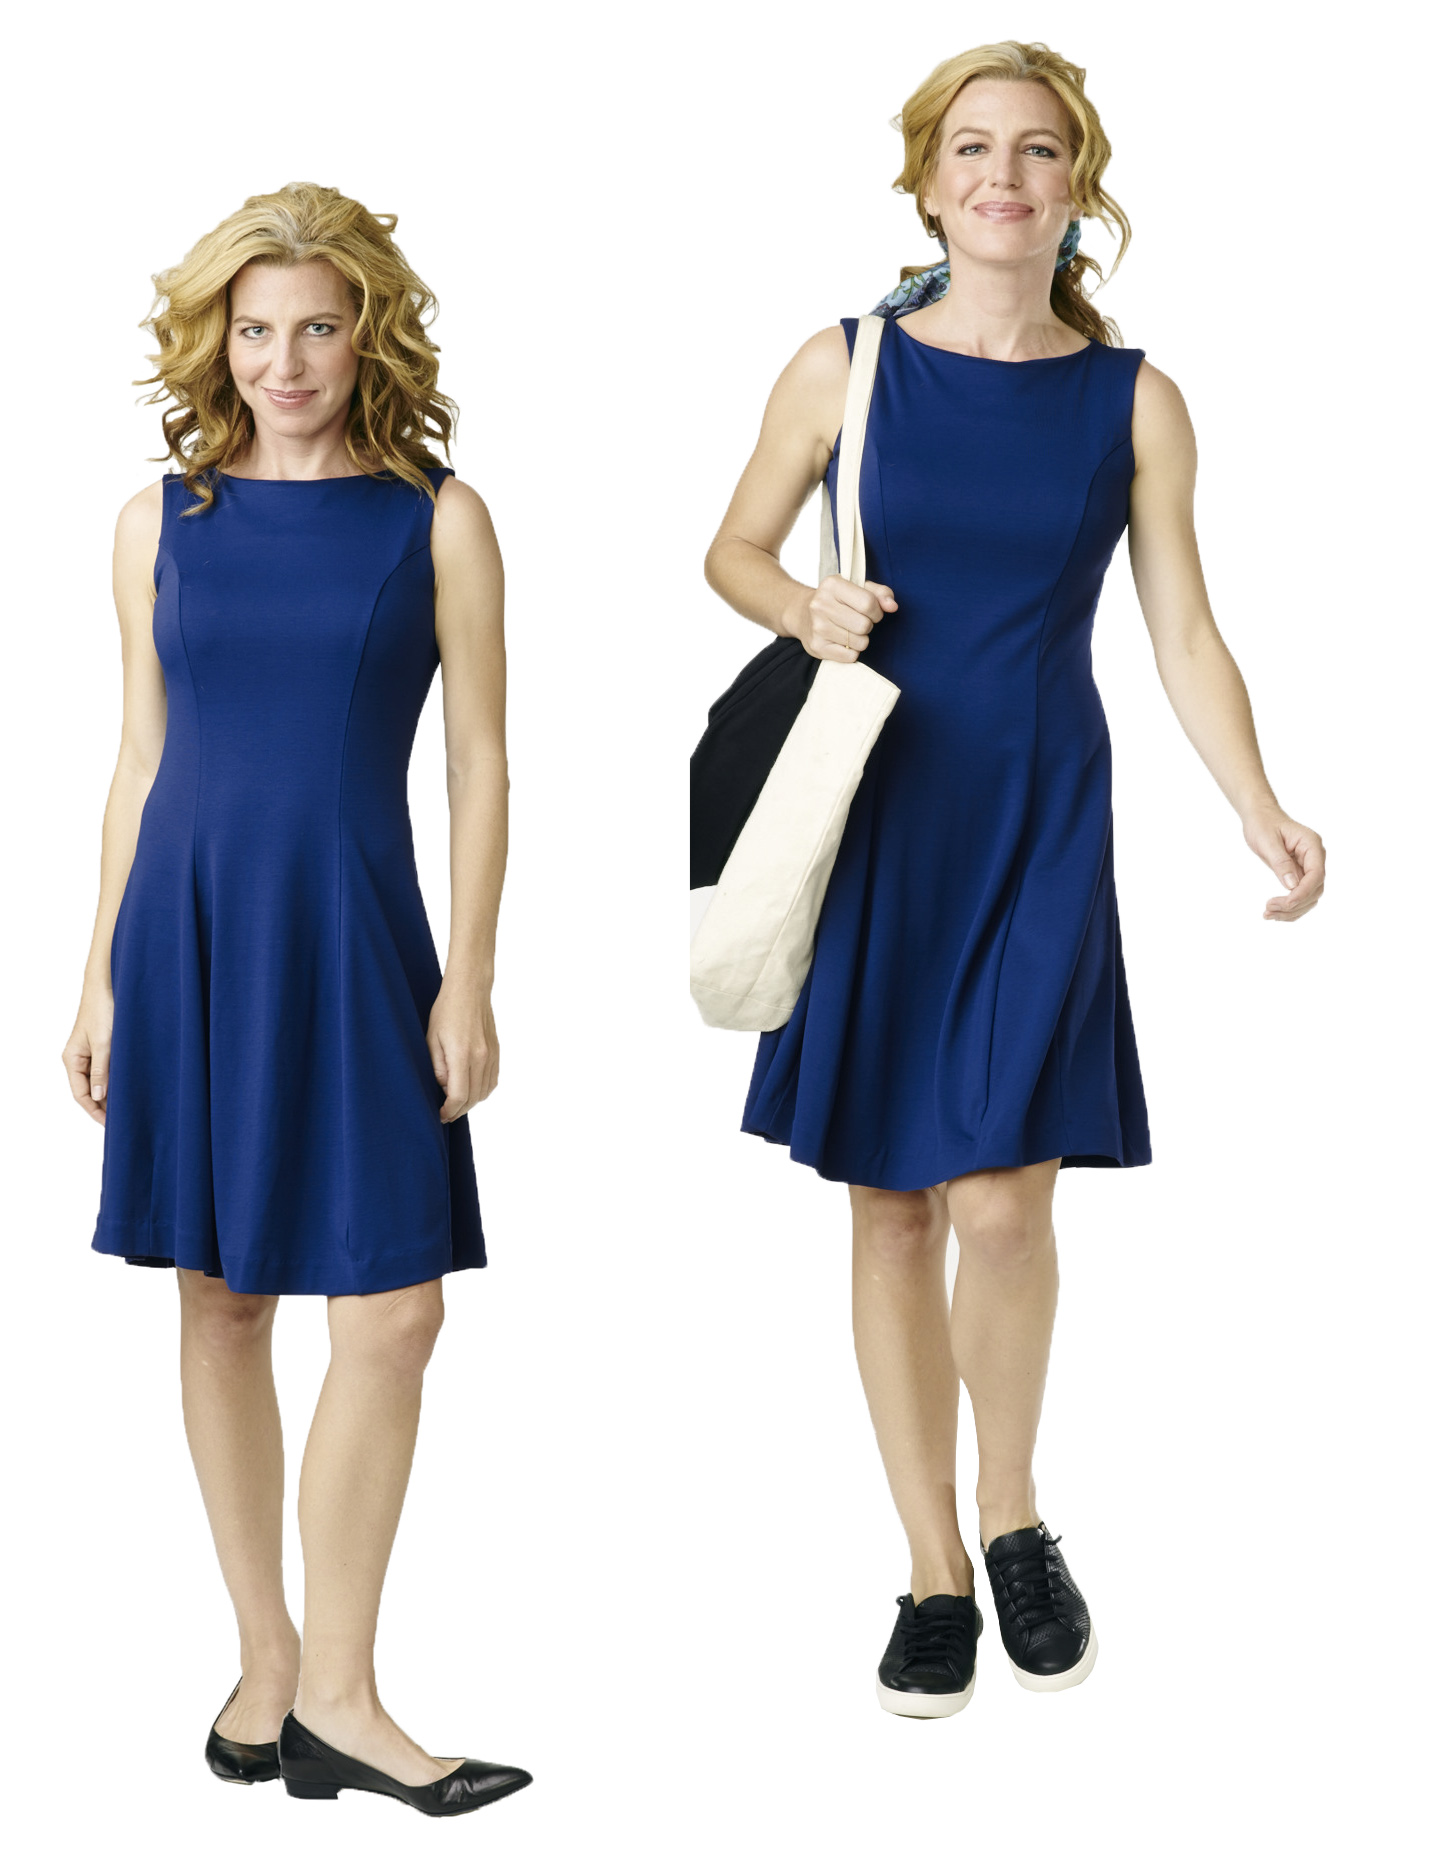 Our Anywhere dress is the perfect women's work clothing for so many different moments in your life.